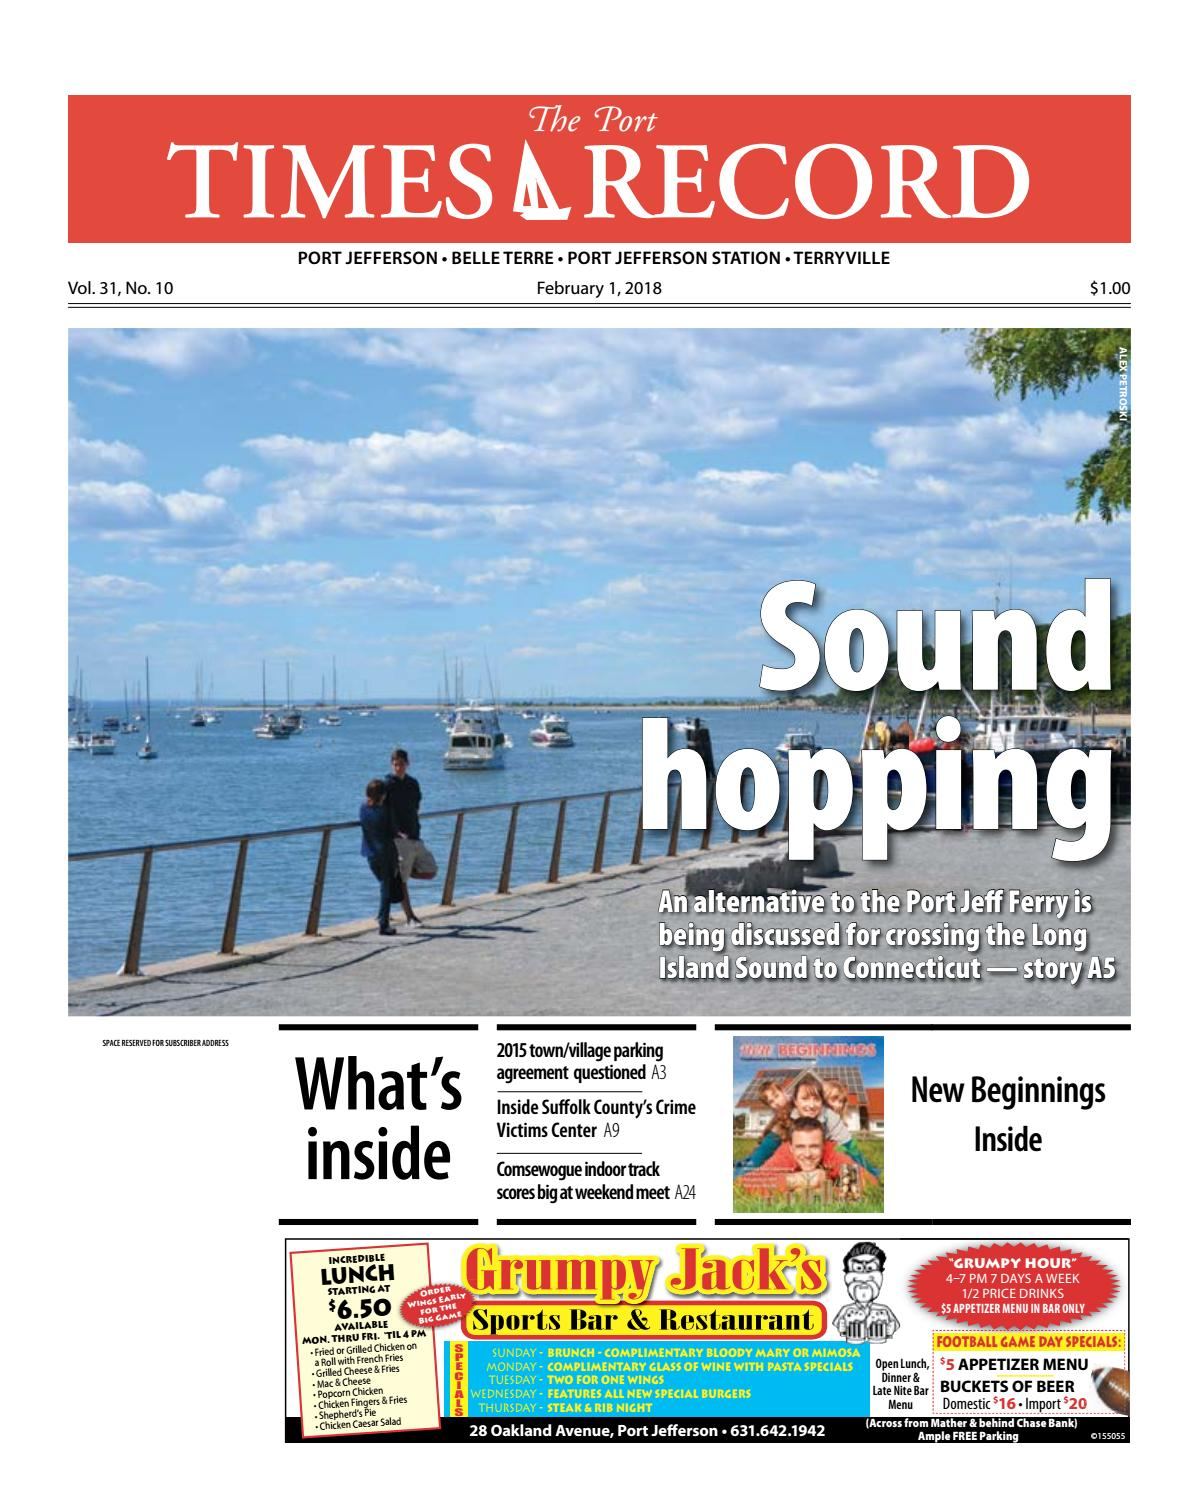 The Port Times Record - February 1, 2018 by TBR News Media - issuu